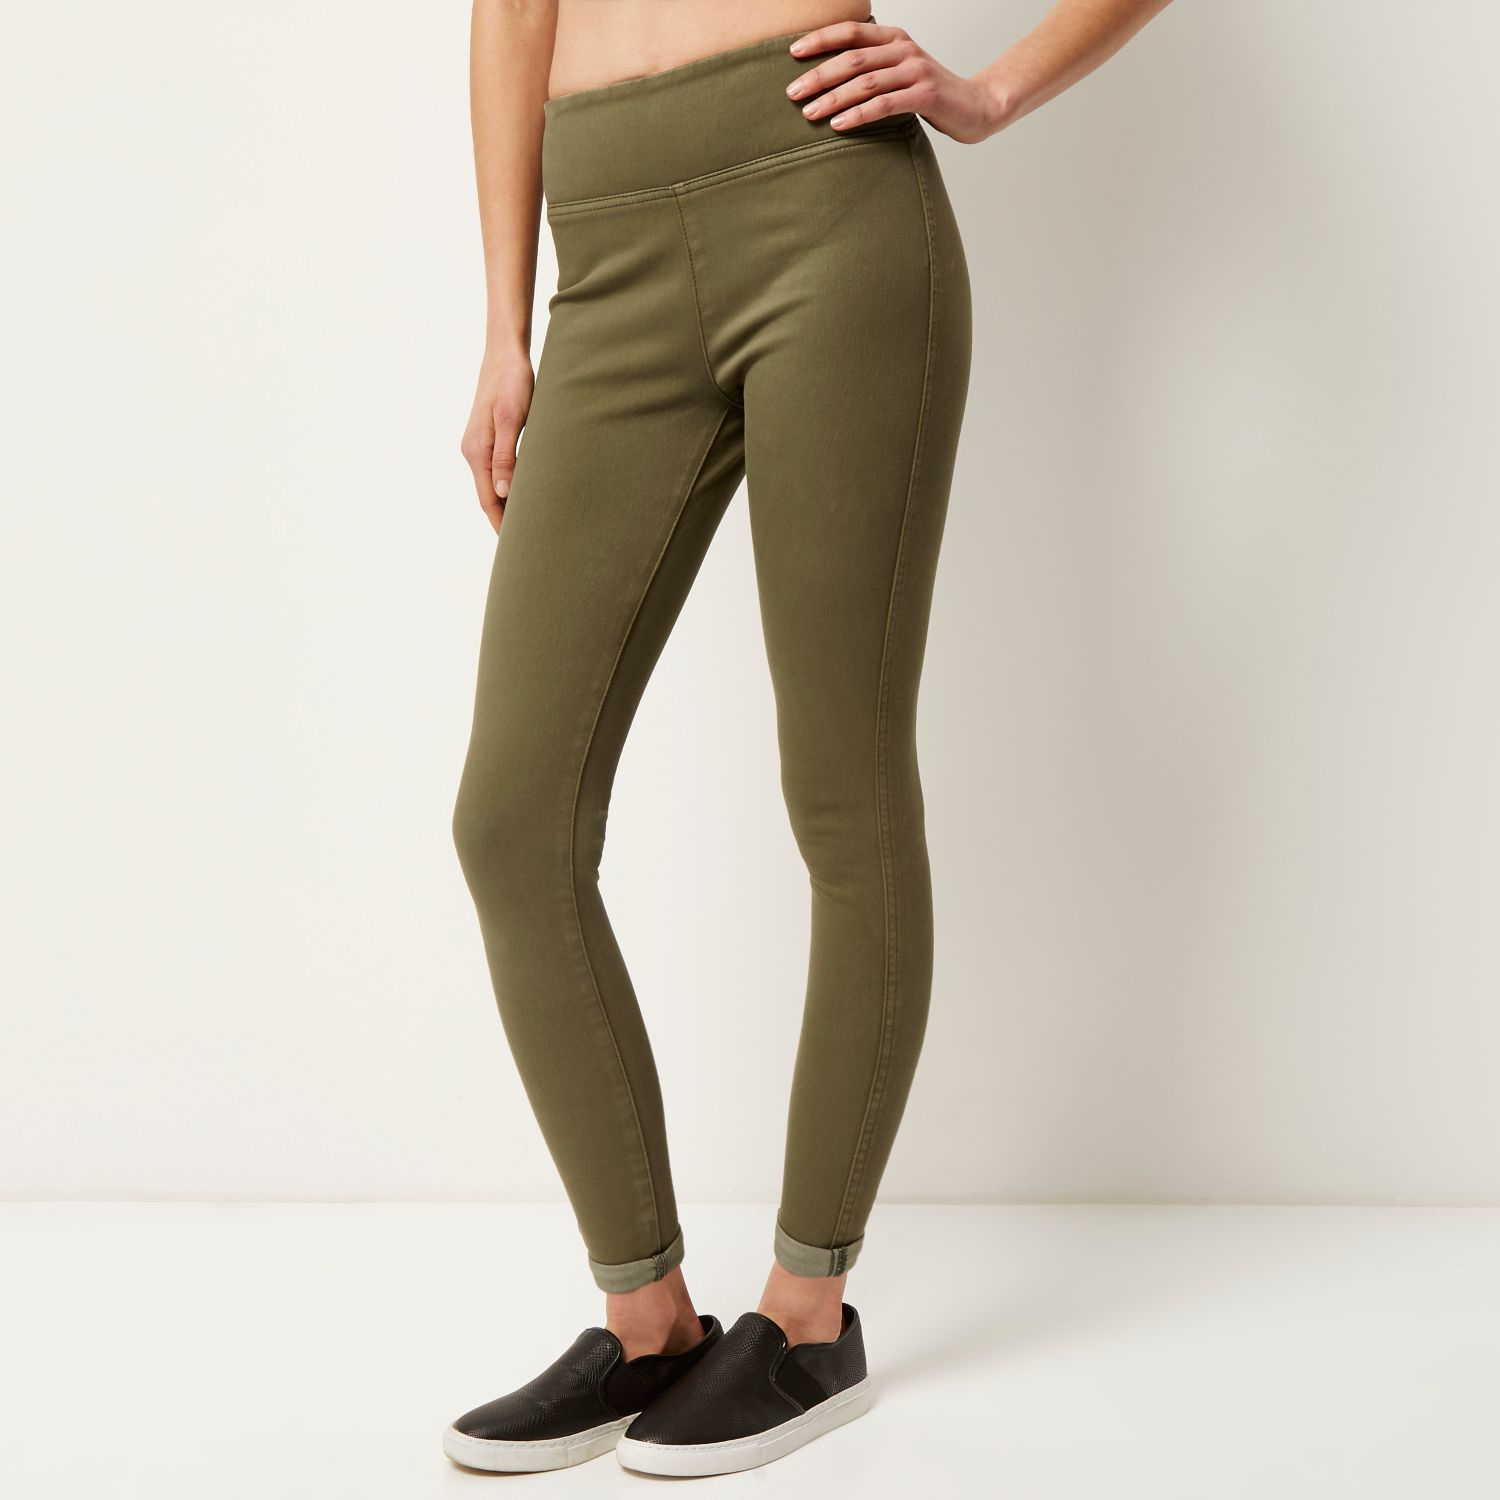 Khaki High Waisted Leggings